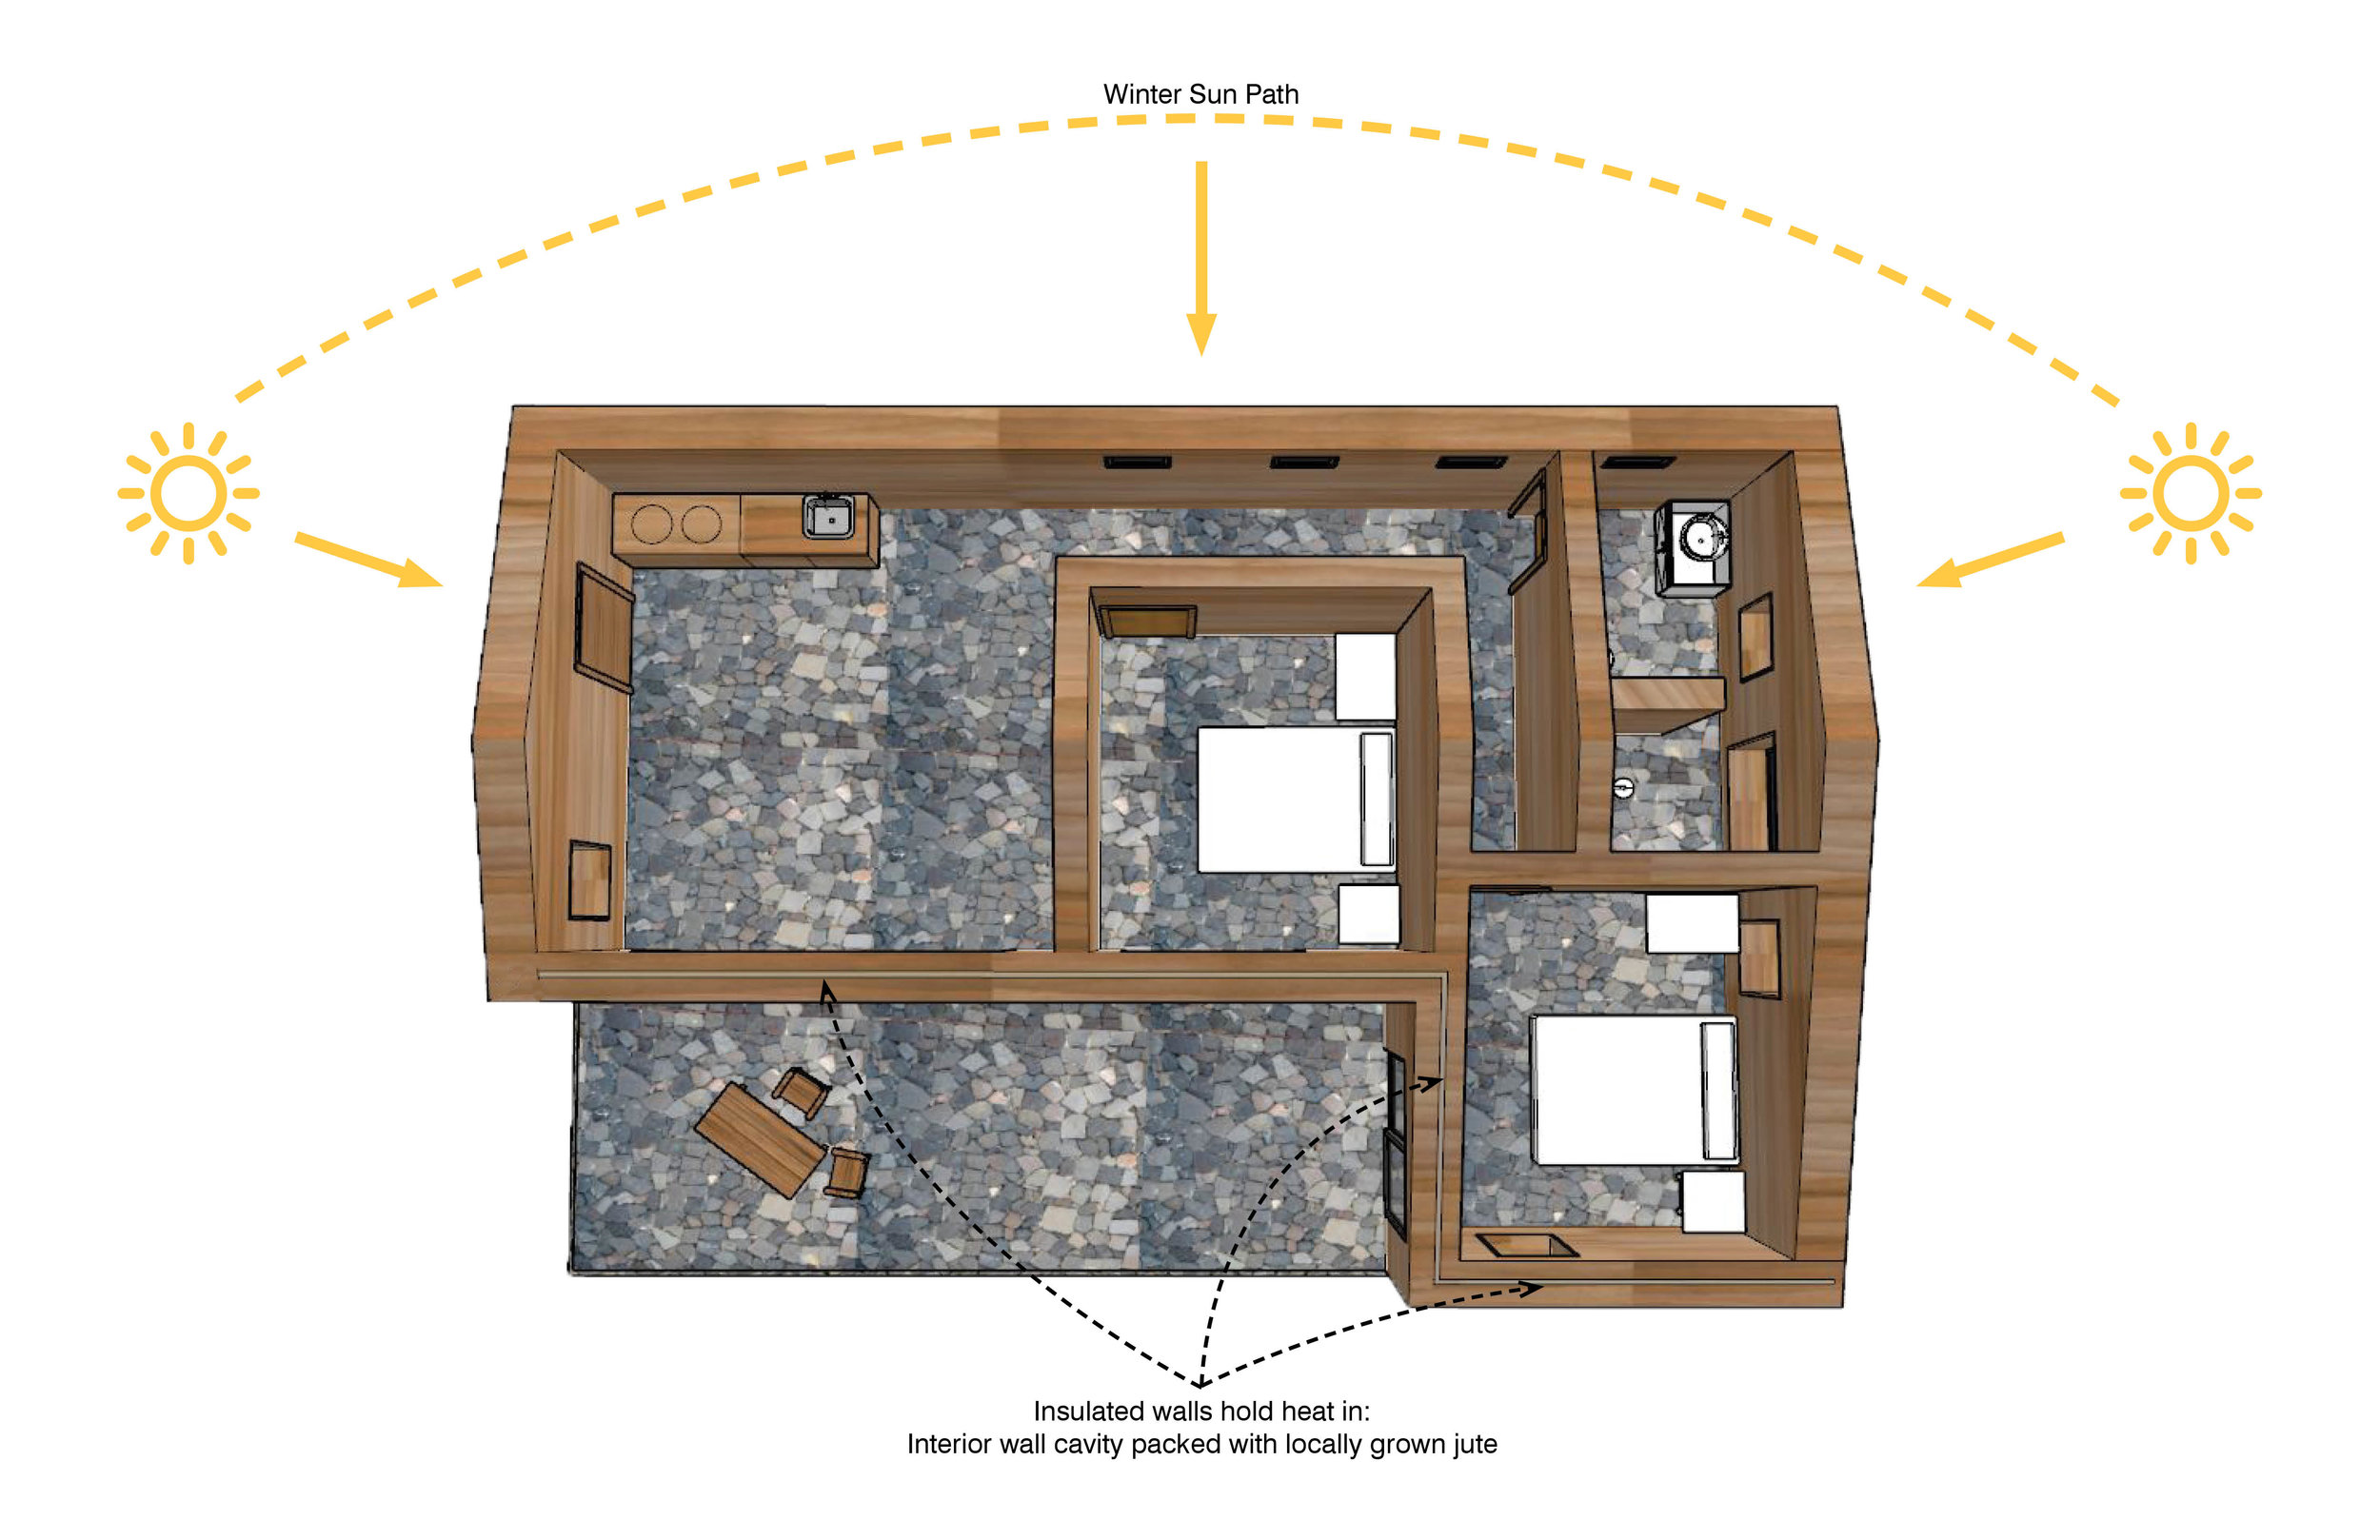 Plan With Insulation_compressed.jpg